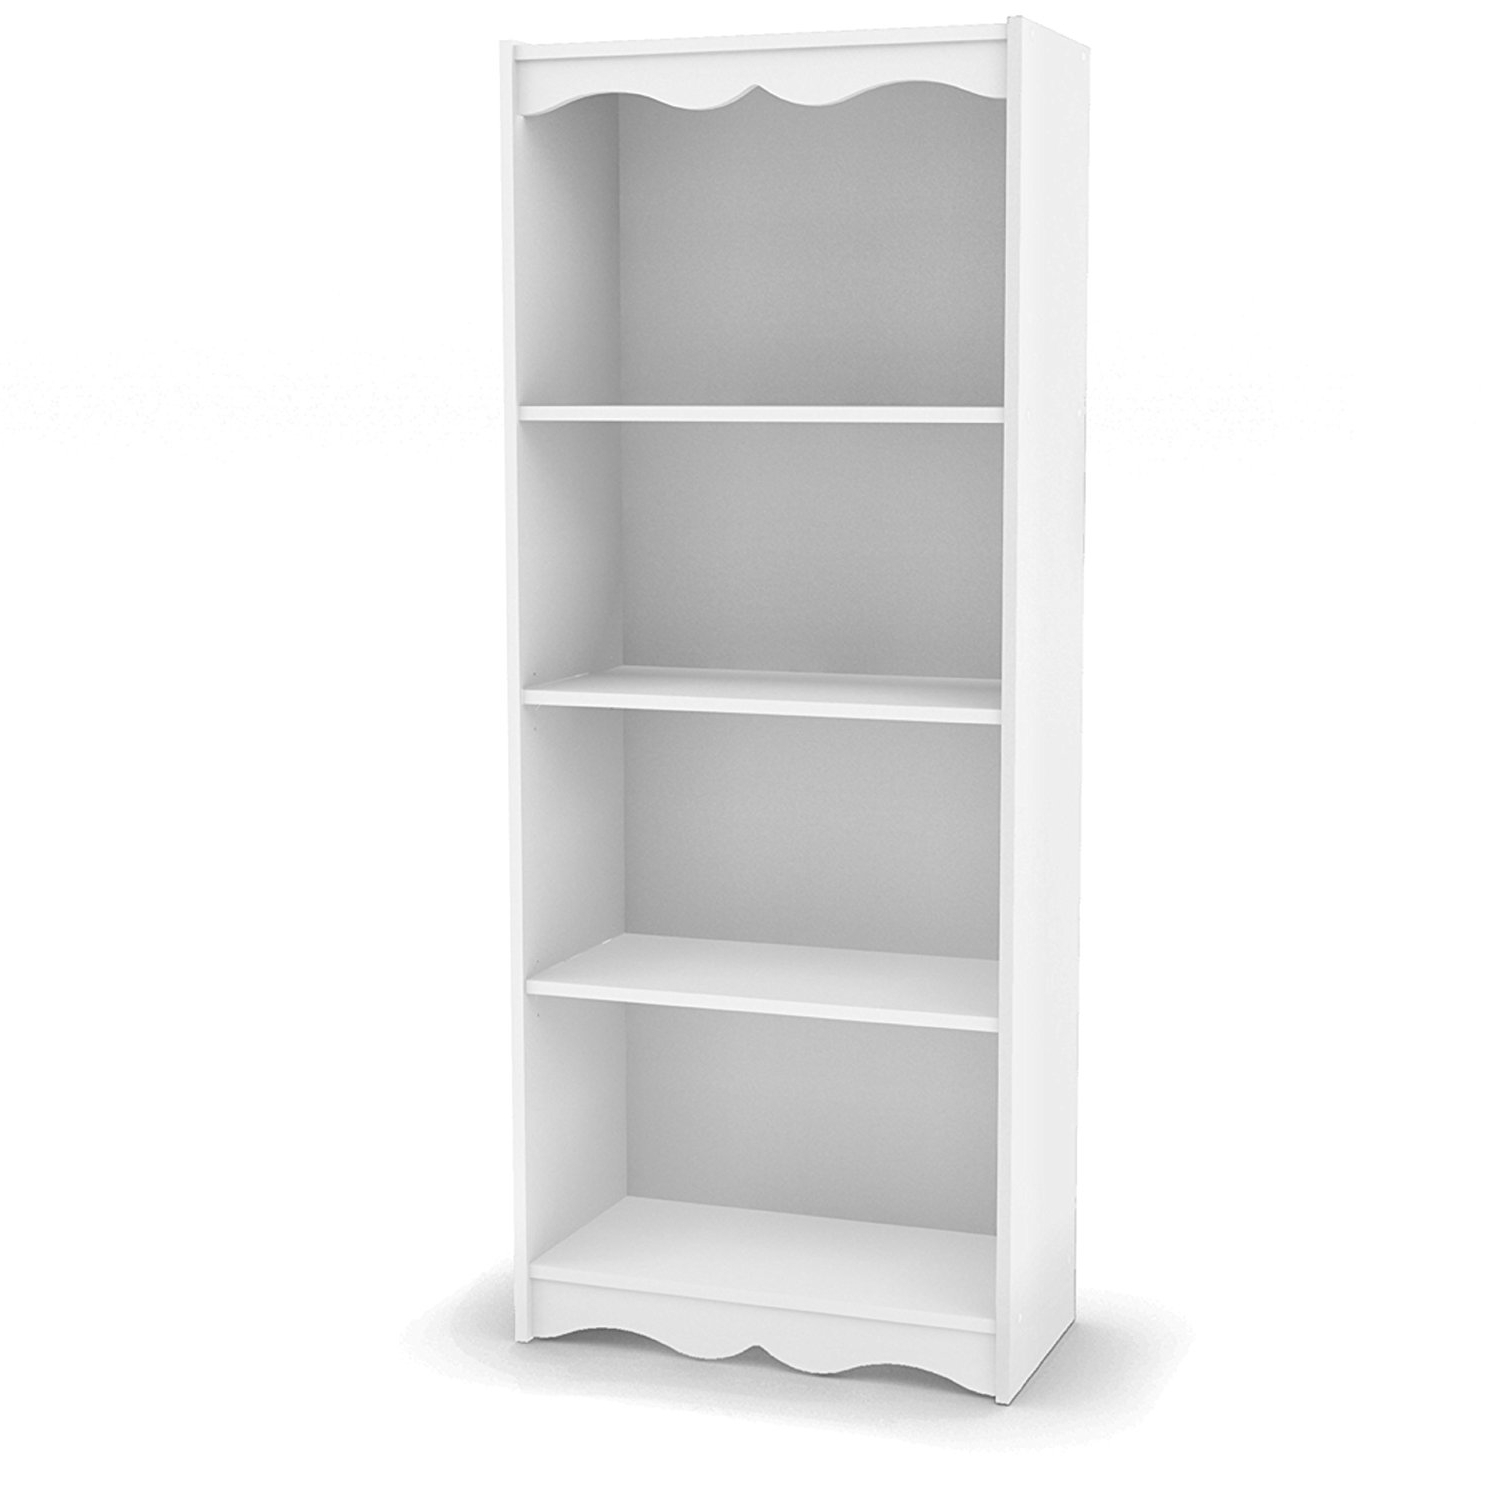 Amazon: Sonax Hawthorn 48 Inch Tall Bookcase, Frost White Regarding Most Up To Date White Bookcases (View 3 of 15)